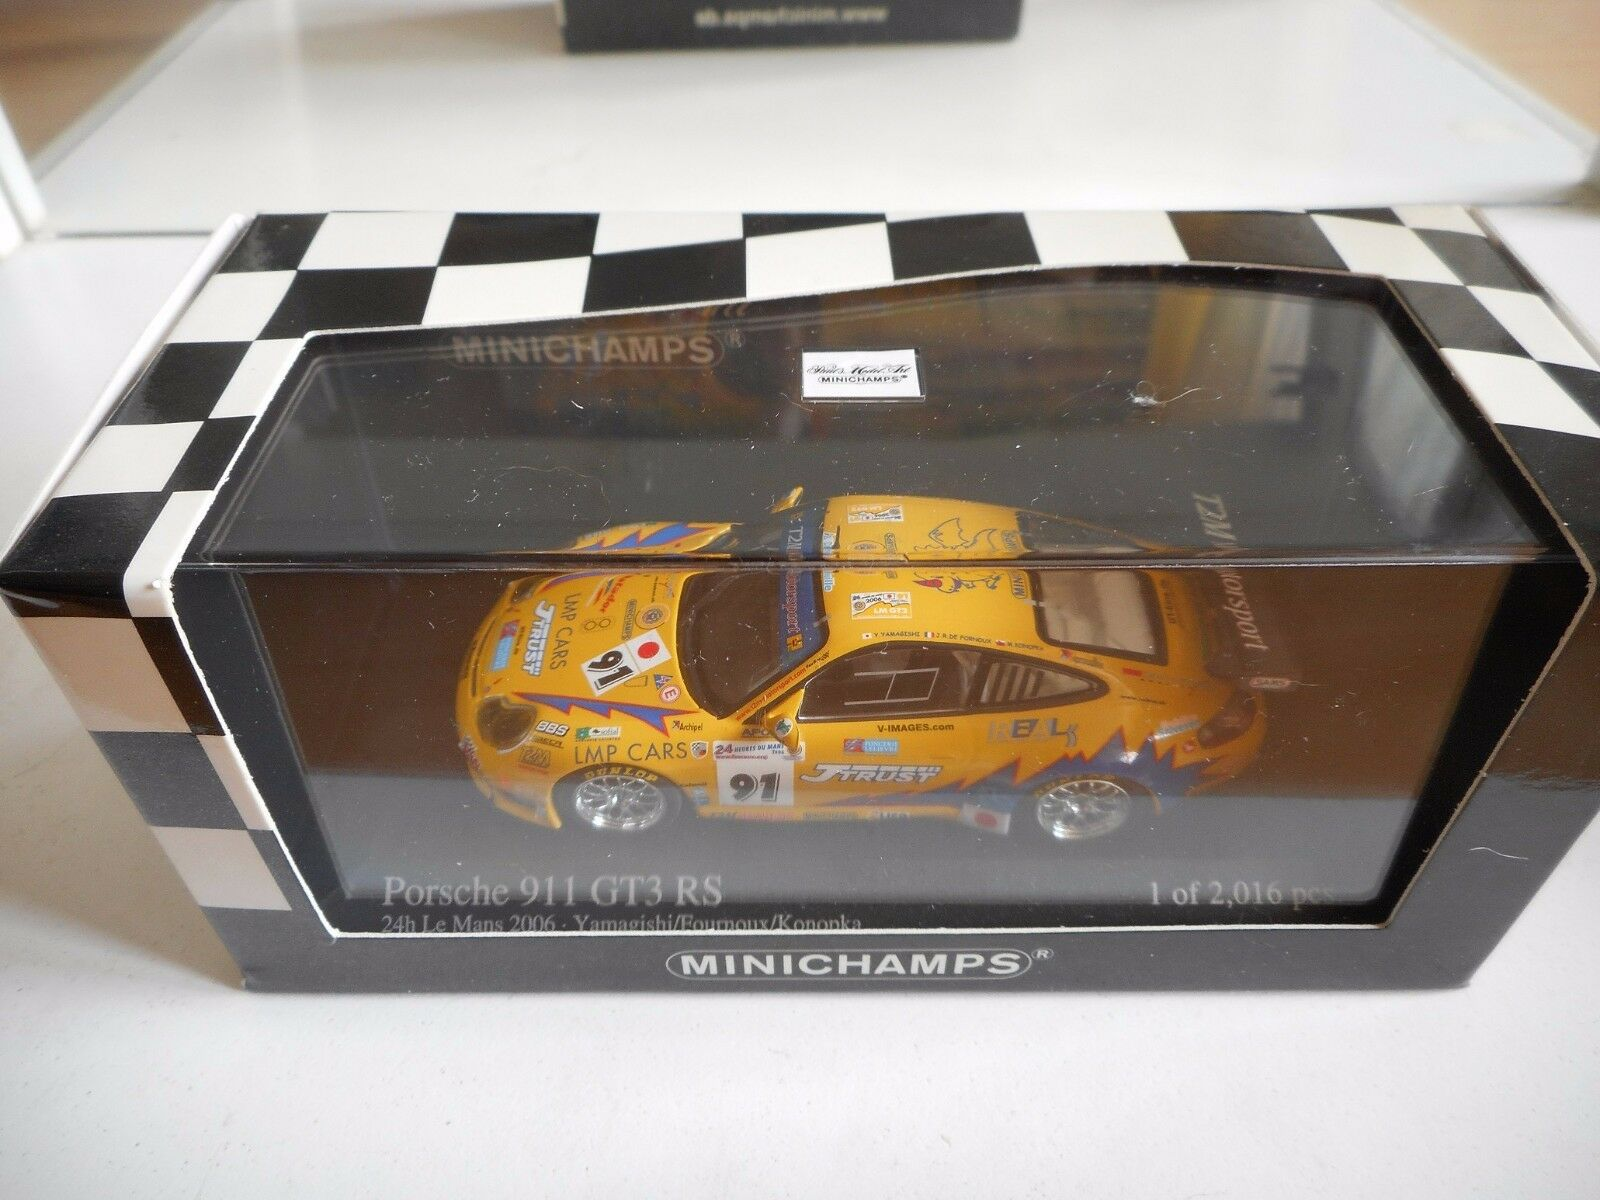 Minichamps Porsche 911 GT3 RS 24h Le Mans 2006 in in in Yellow on 1 43 in Box 630423